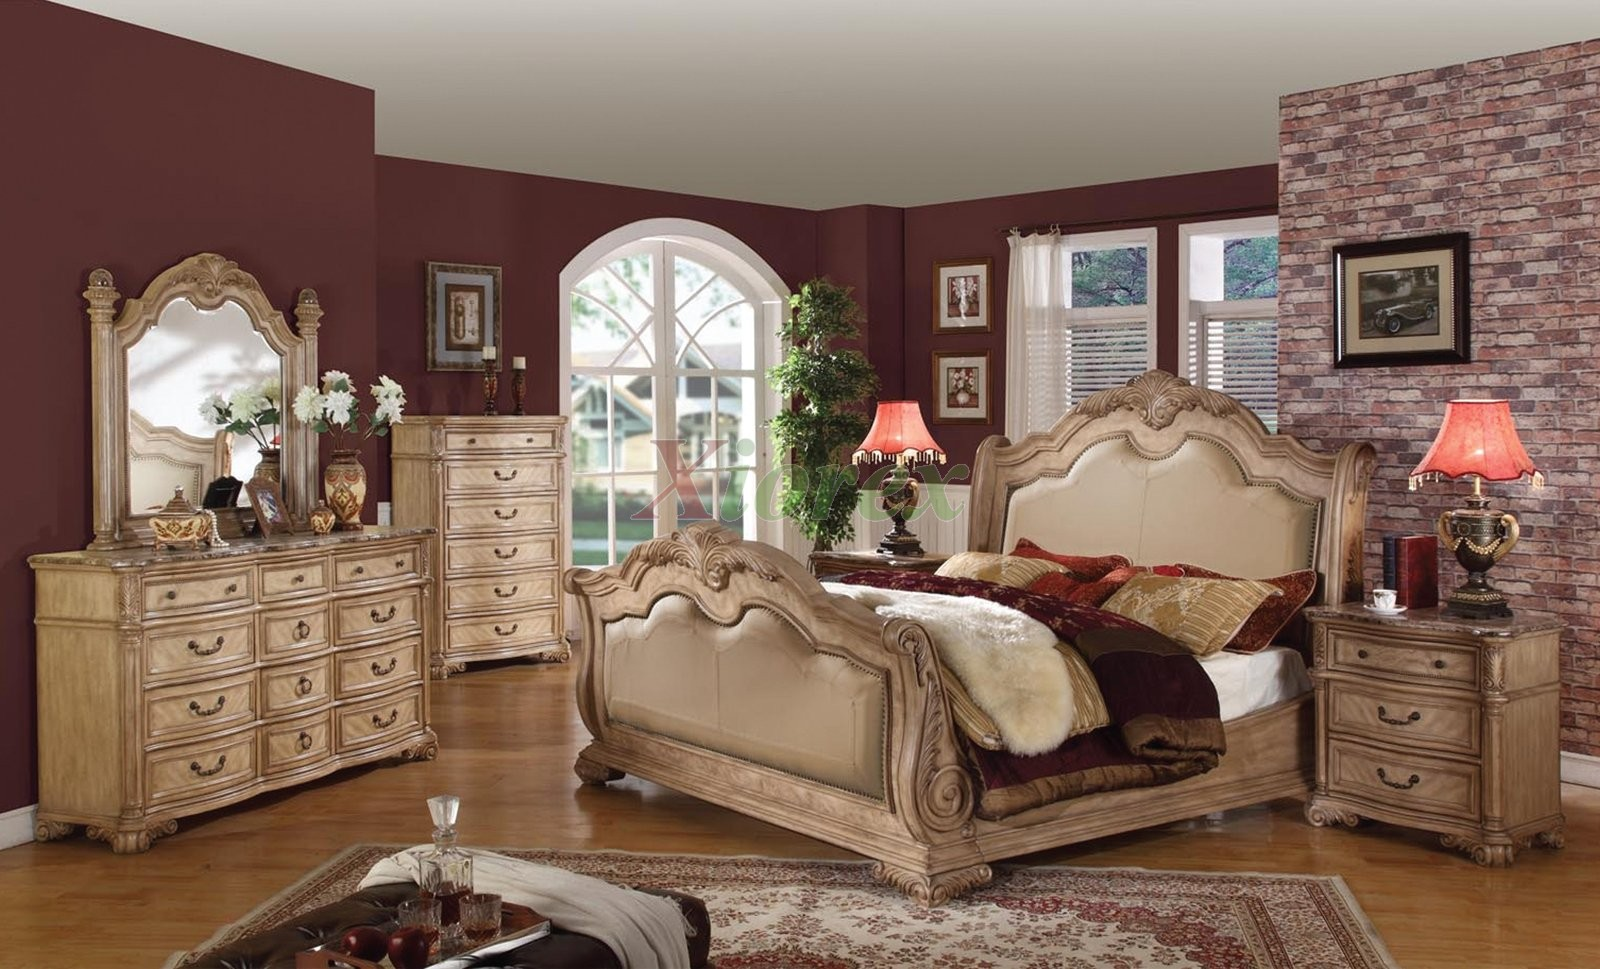 Sleigh Bedroom Furniture Set with Leather Headboard and ...